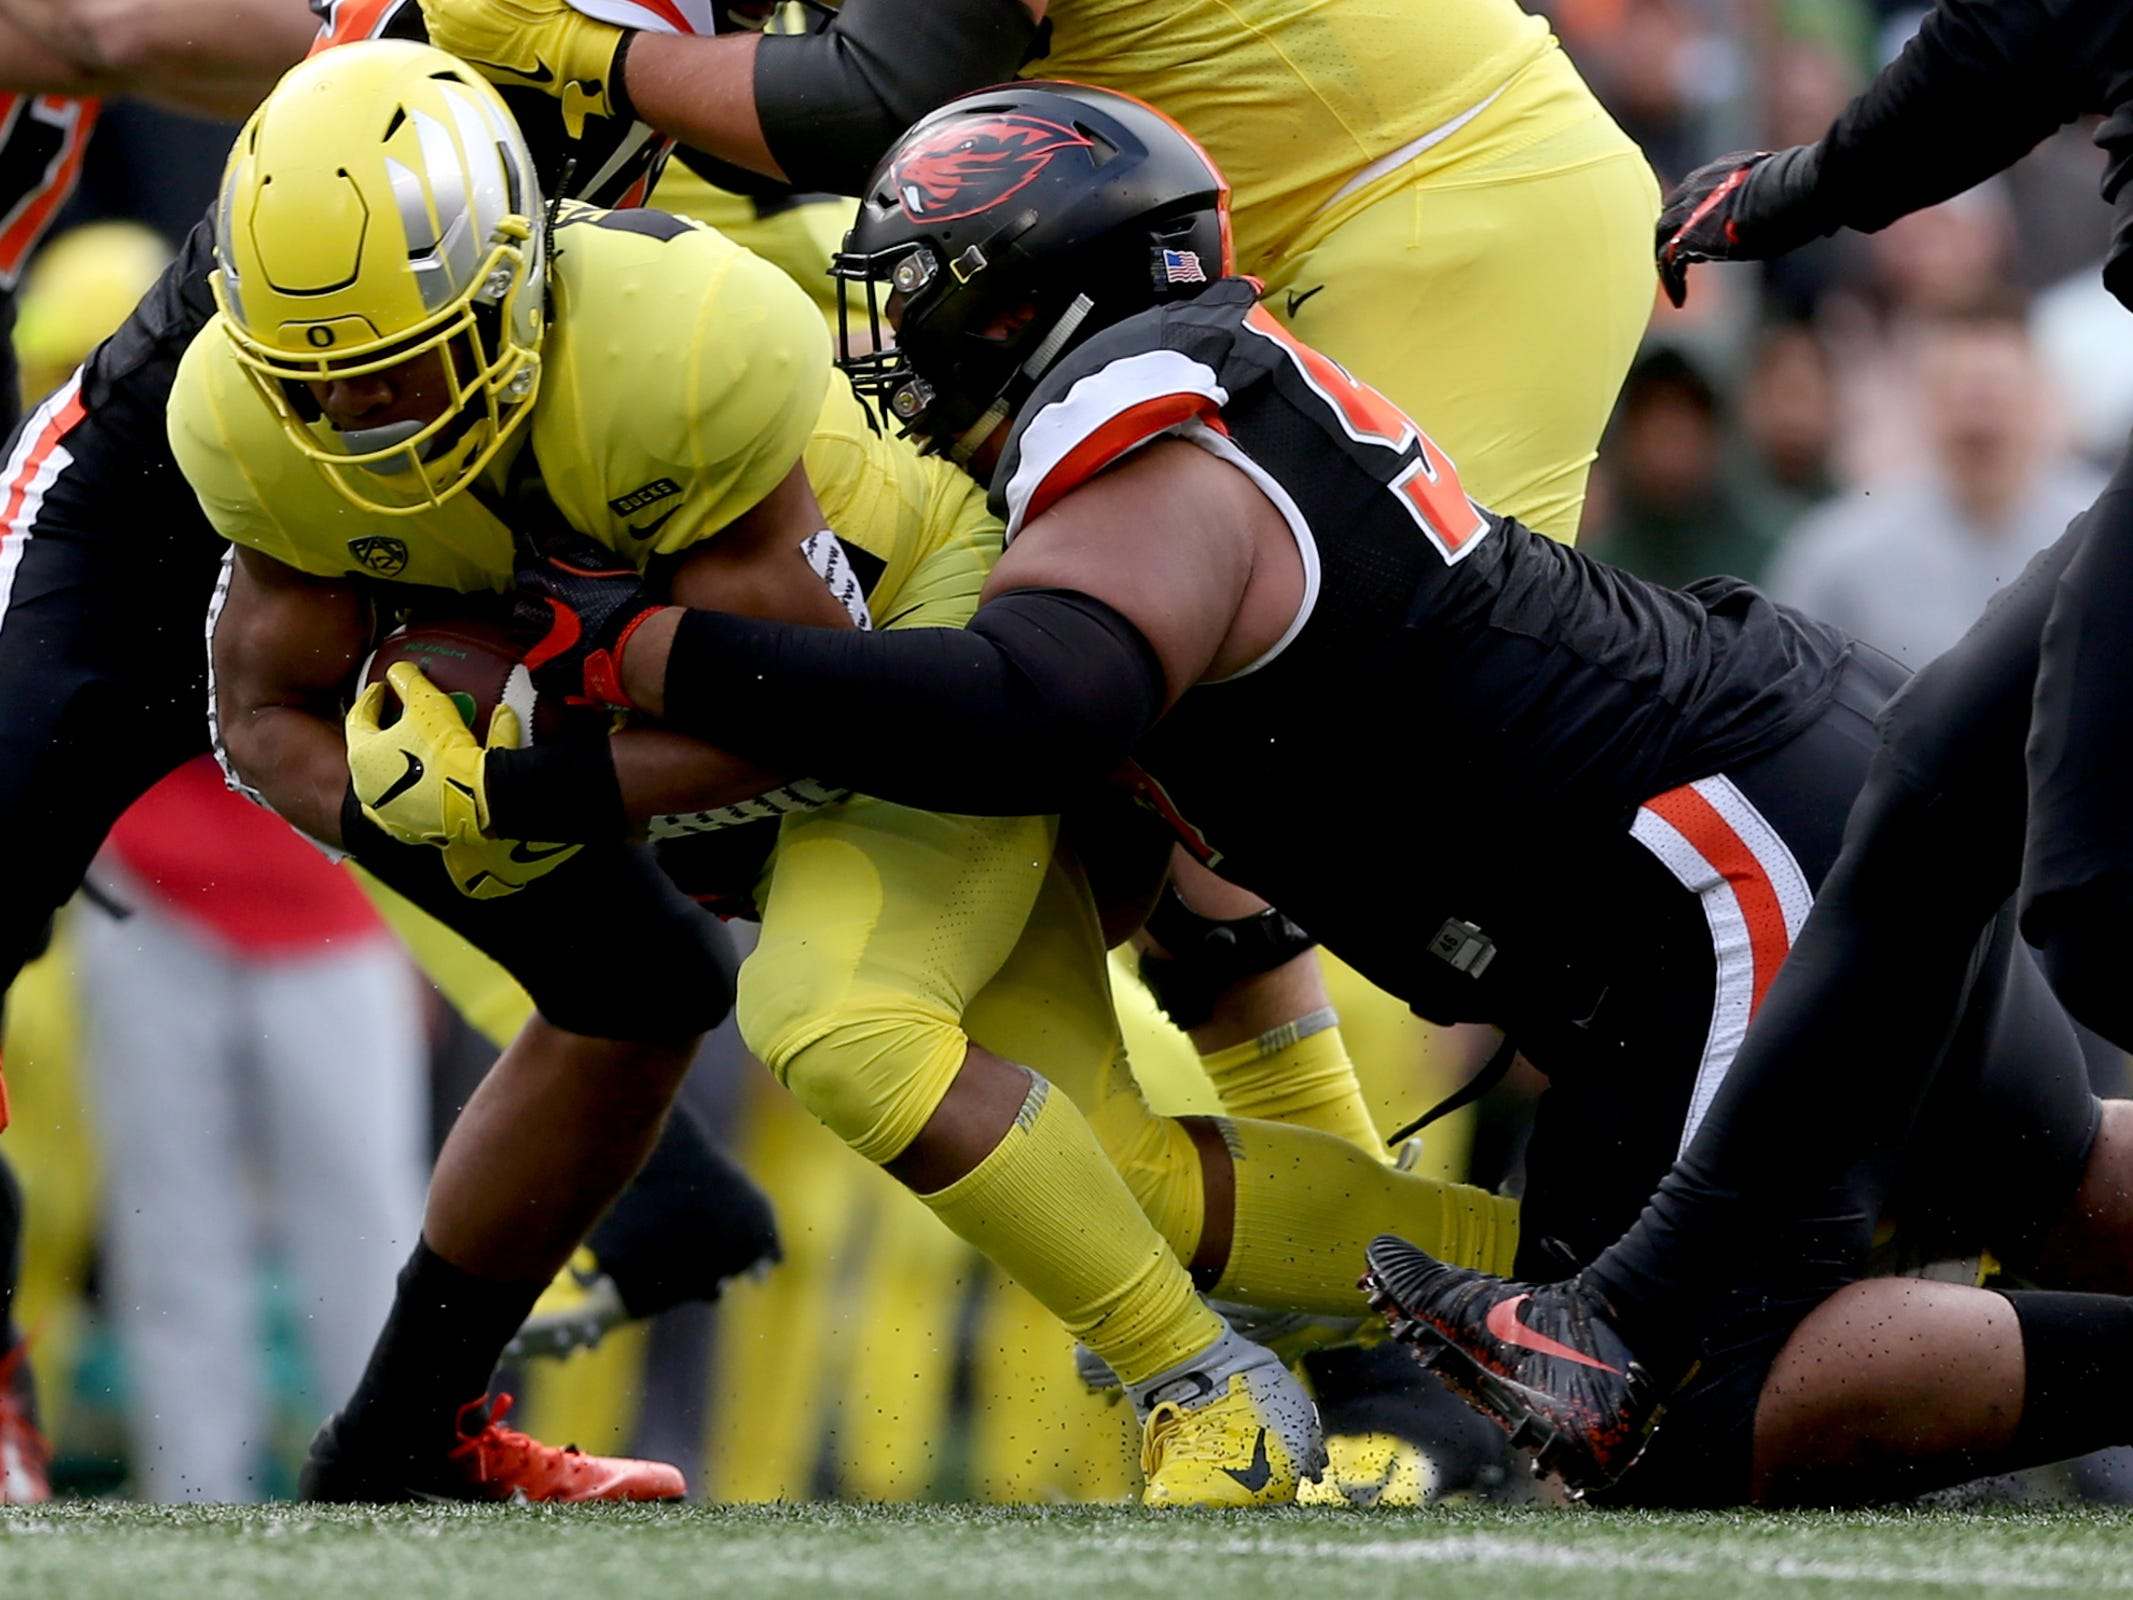 Oregon State's Elu Aydon (99) takes down Oregon's CJ Verdell (34) in the Oregon vs. Oregon State Civil war football game at Oregon State University in Corvallis on Friday, Nov. 23, 2018.